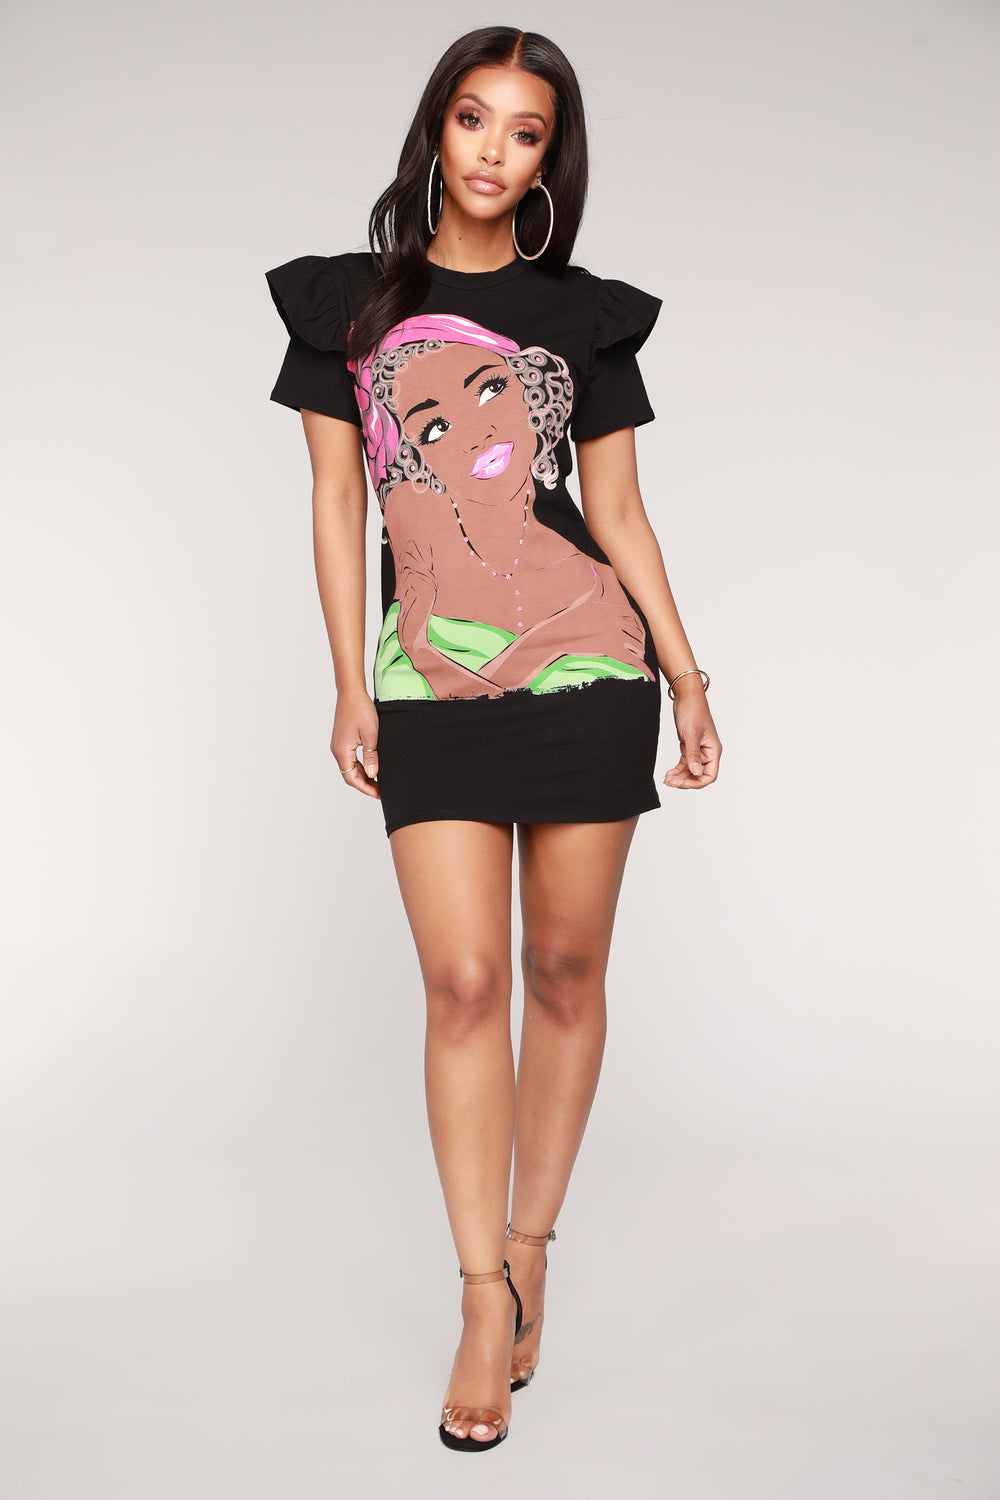 Day Dreaming About You Tee - Black